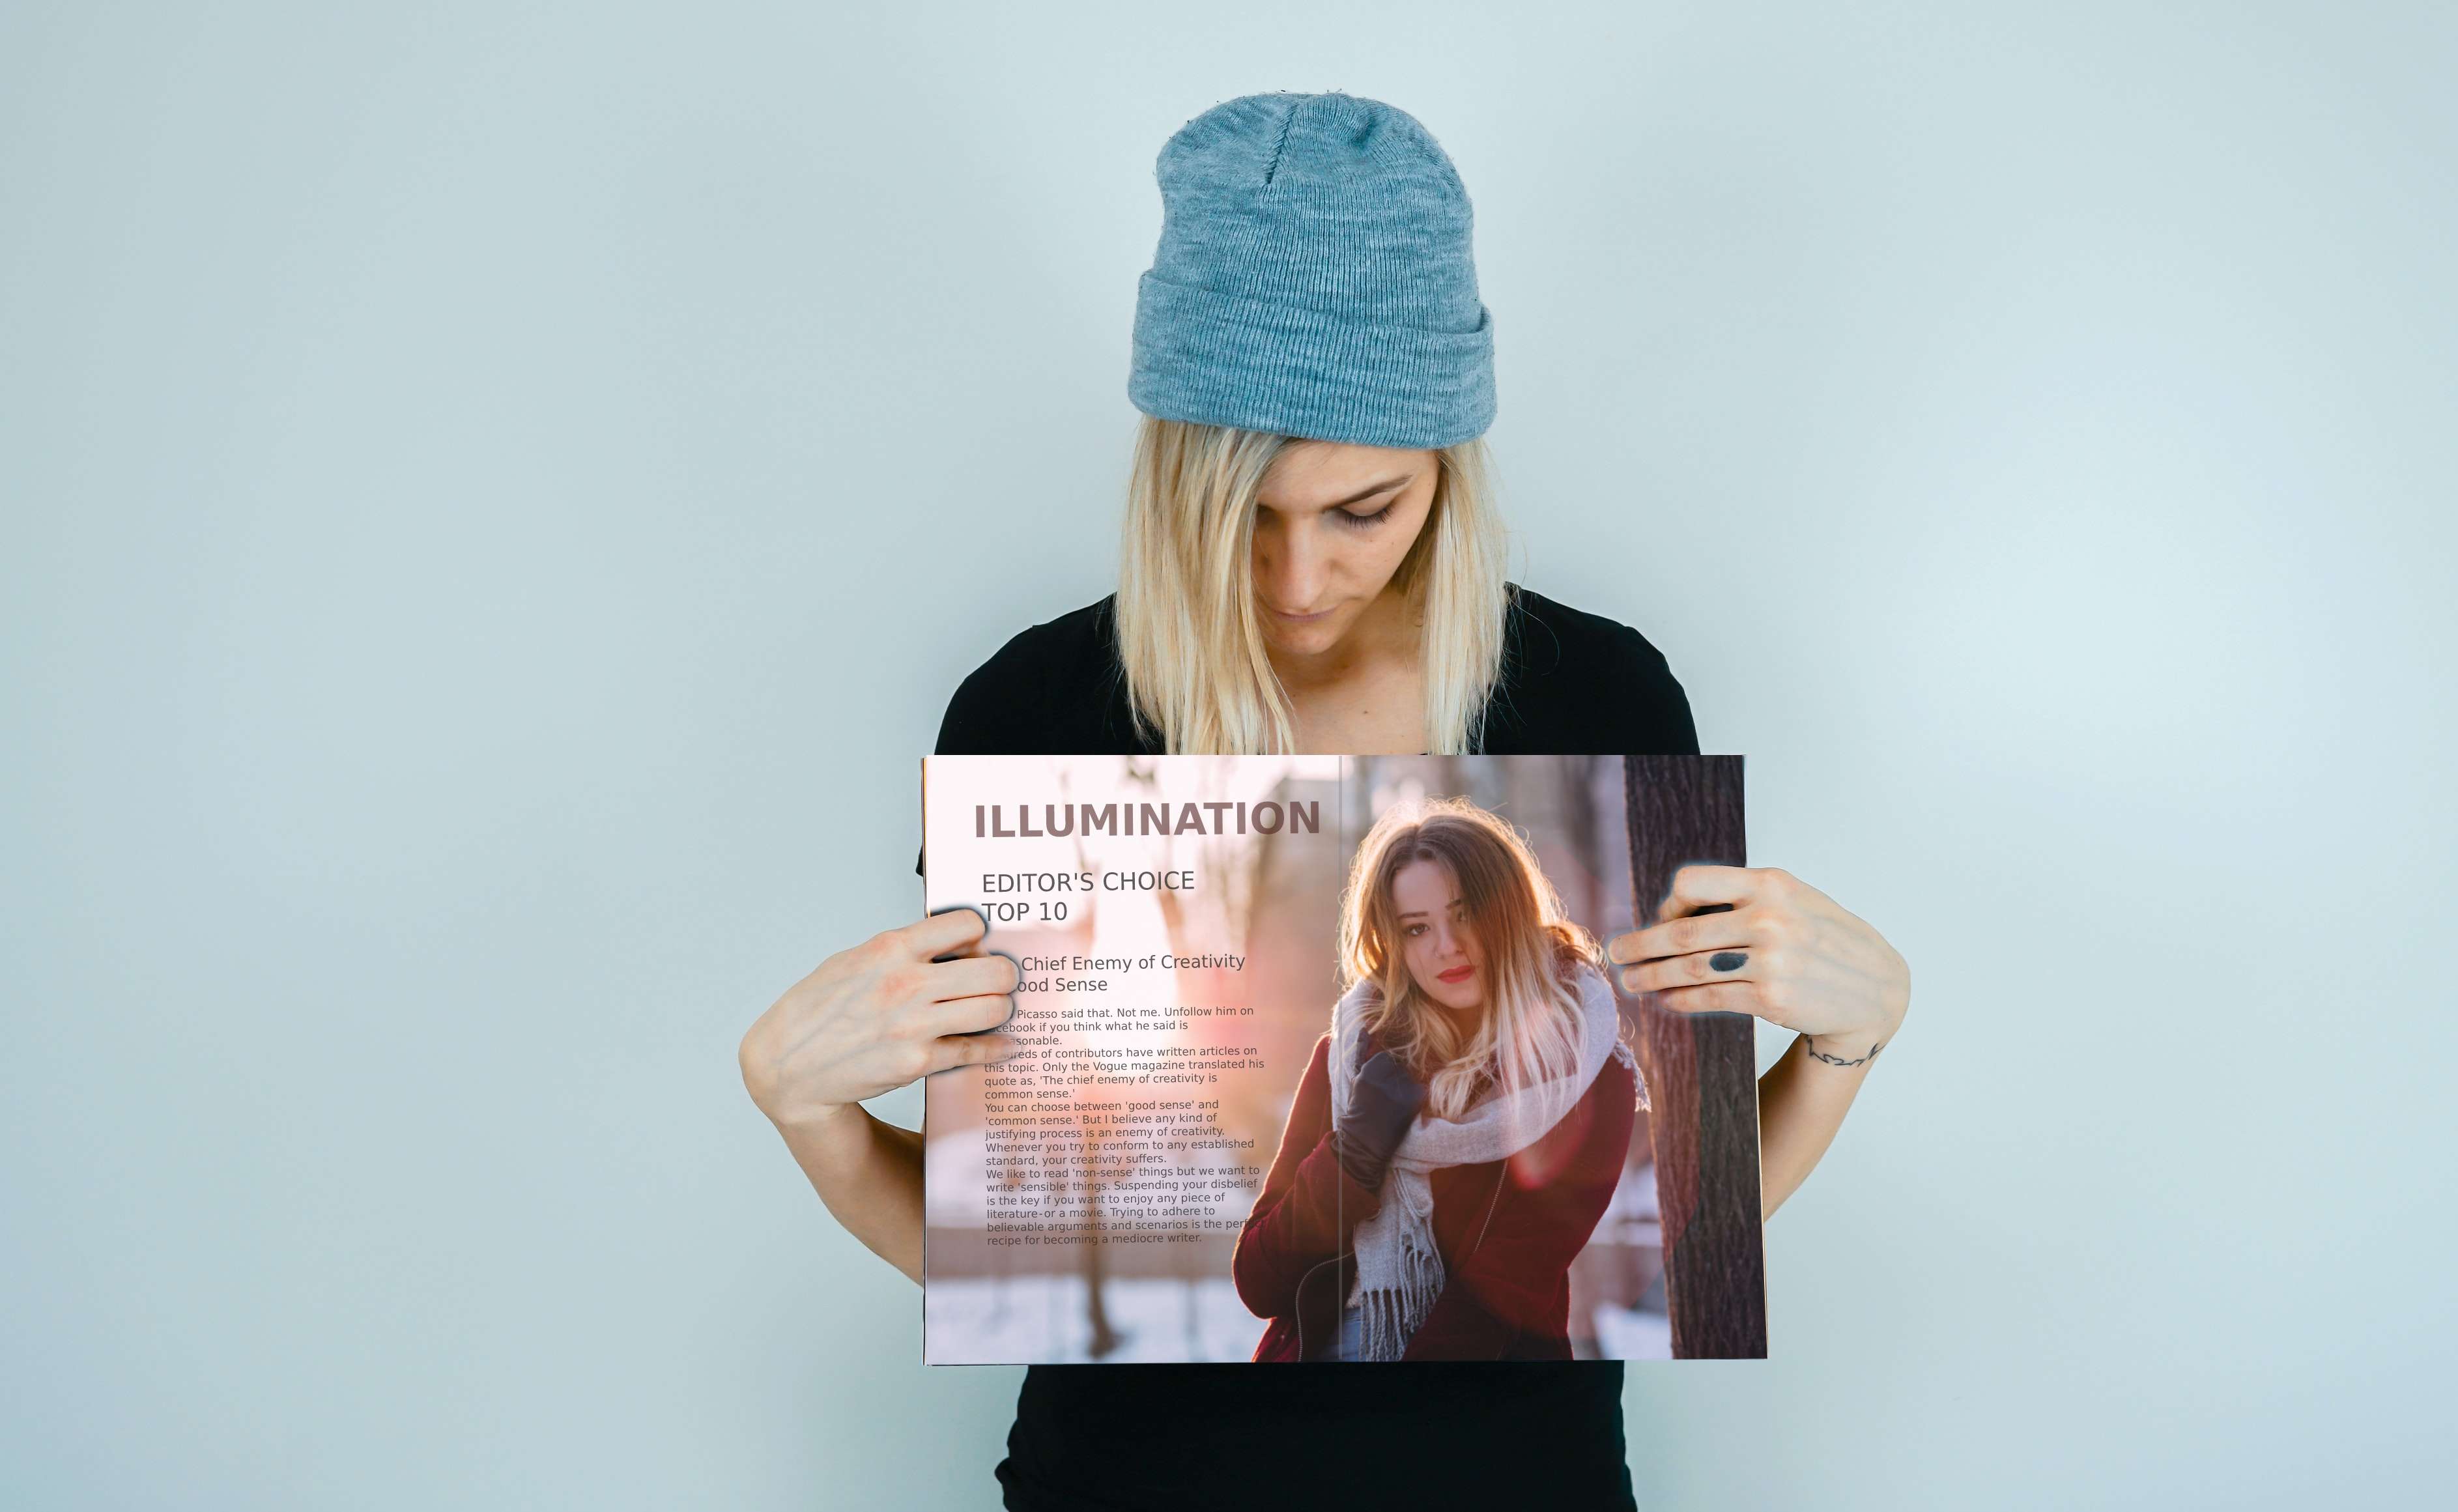 Girl standing with a cap and a magazine in her hands with text: Illumination—Editor's Choice